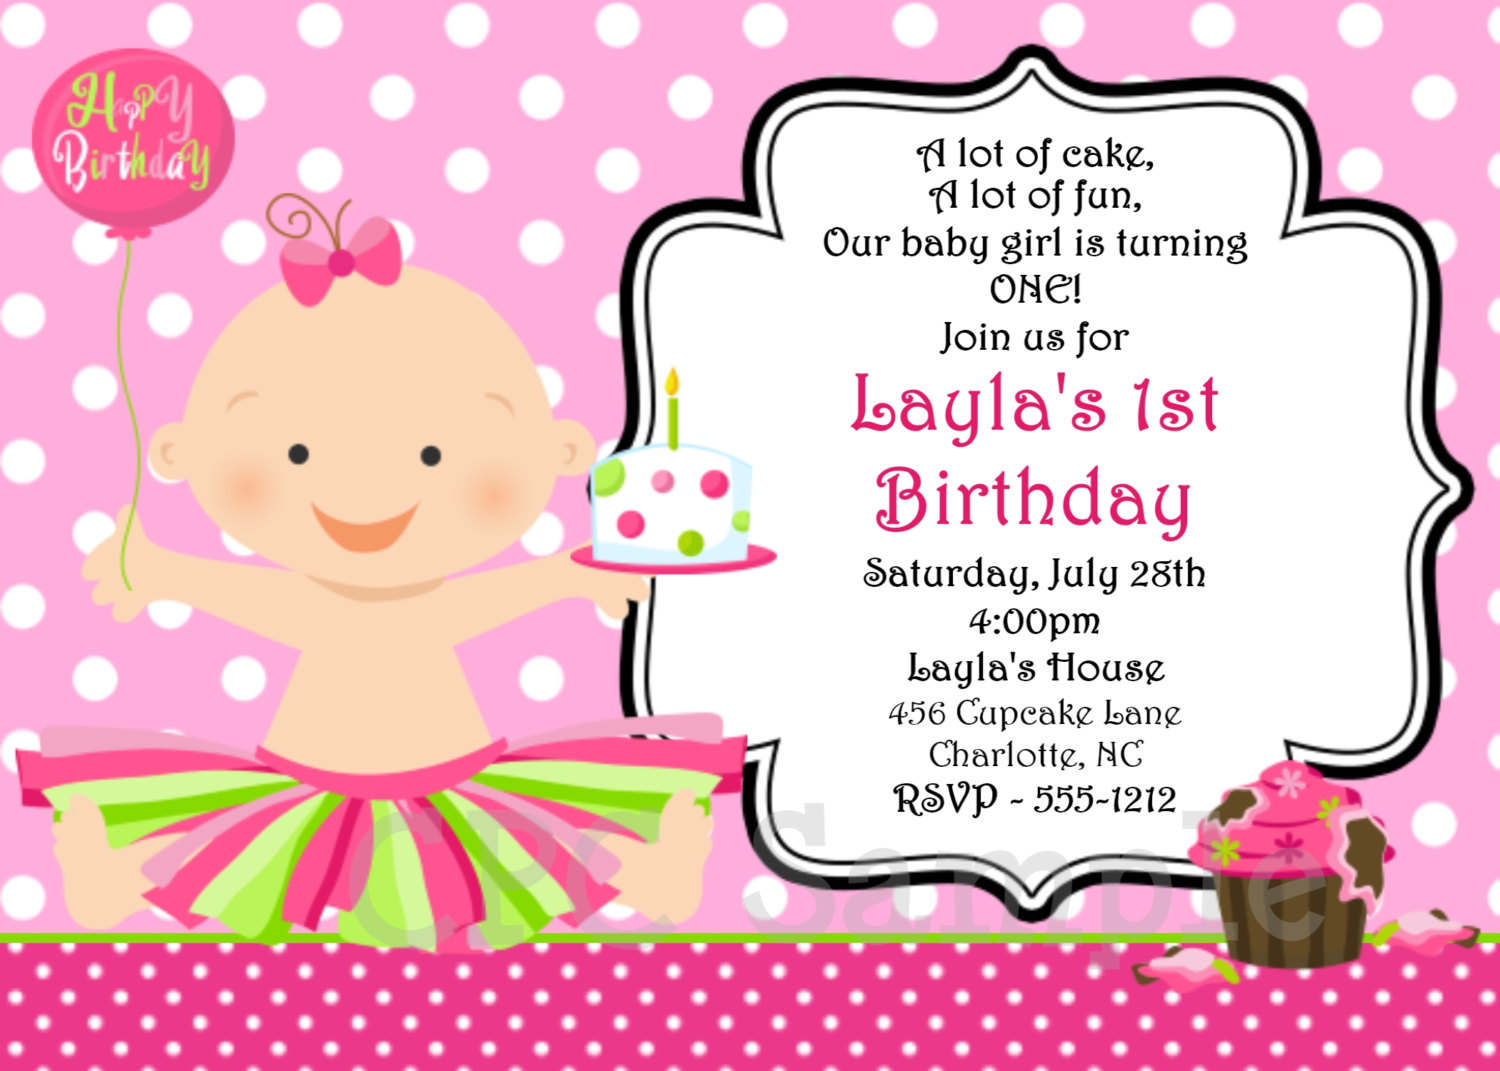 first birthday online invitation templates free ; Online-Birthday-Invitations-is-a-creation-that-may-be-a-valuable-source-of-inspiration-for-your-invitation-20